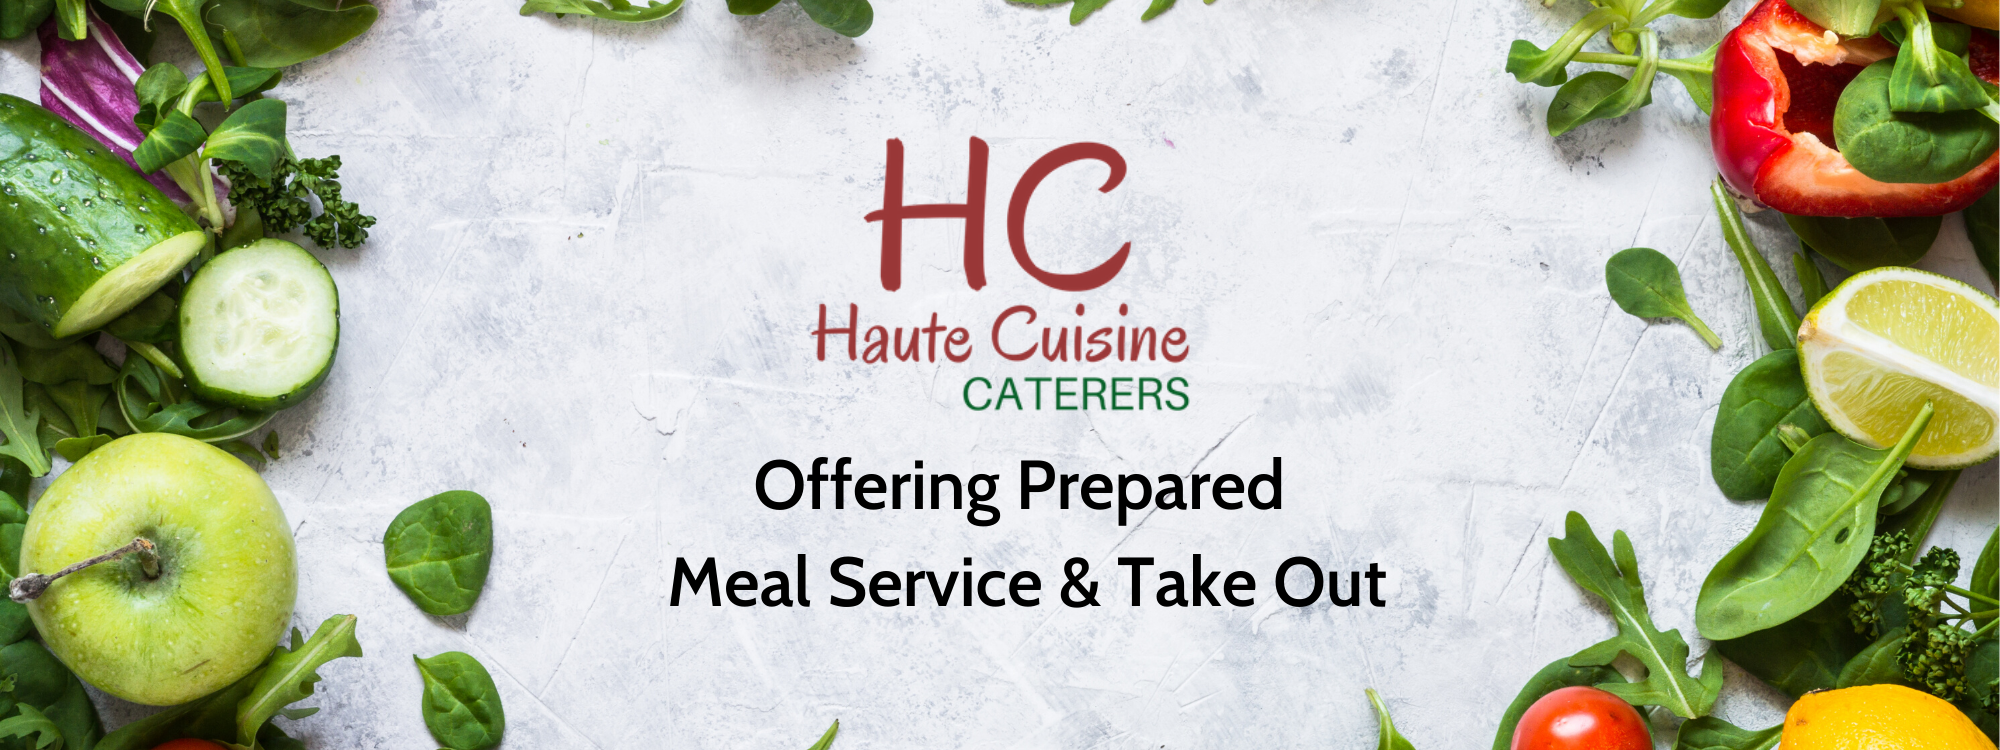 """</a>                                                                                                                                                                                       <span class=""""slider_description"""">Haute Cuisine Caterers - Meal Service Freshly prepared meals for you and your family.</span>                                                                                     <a href=""""https://www.templebethemet.org/community/hc"""" class=""""slider_link""""                             target=""""_blank"""">                             More Details                            </a>"""